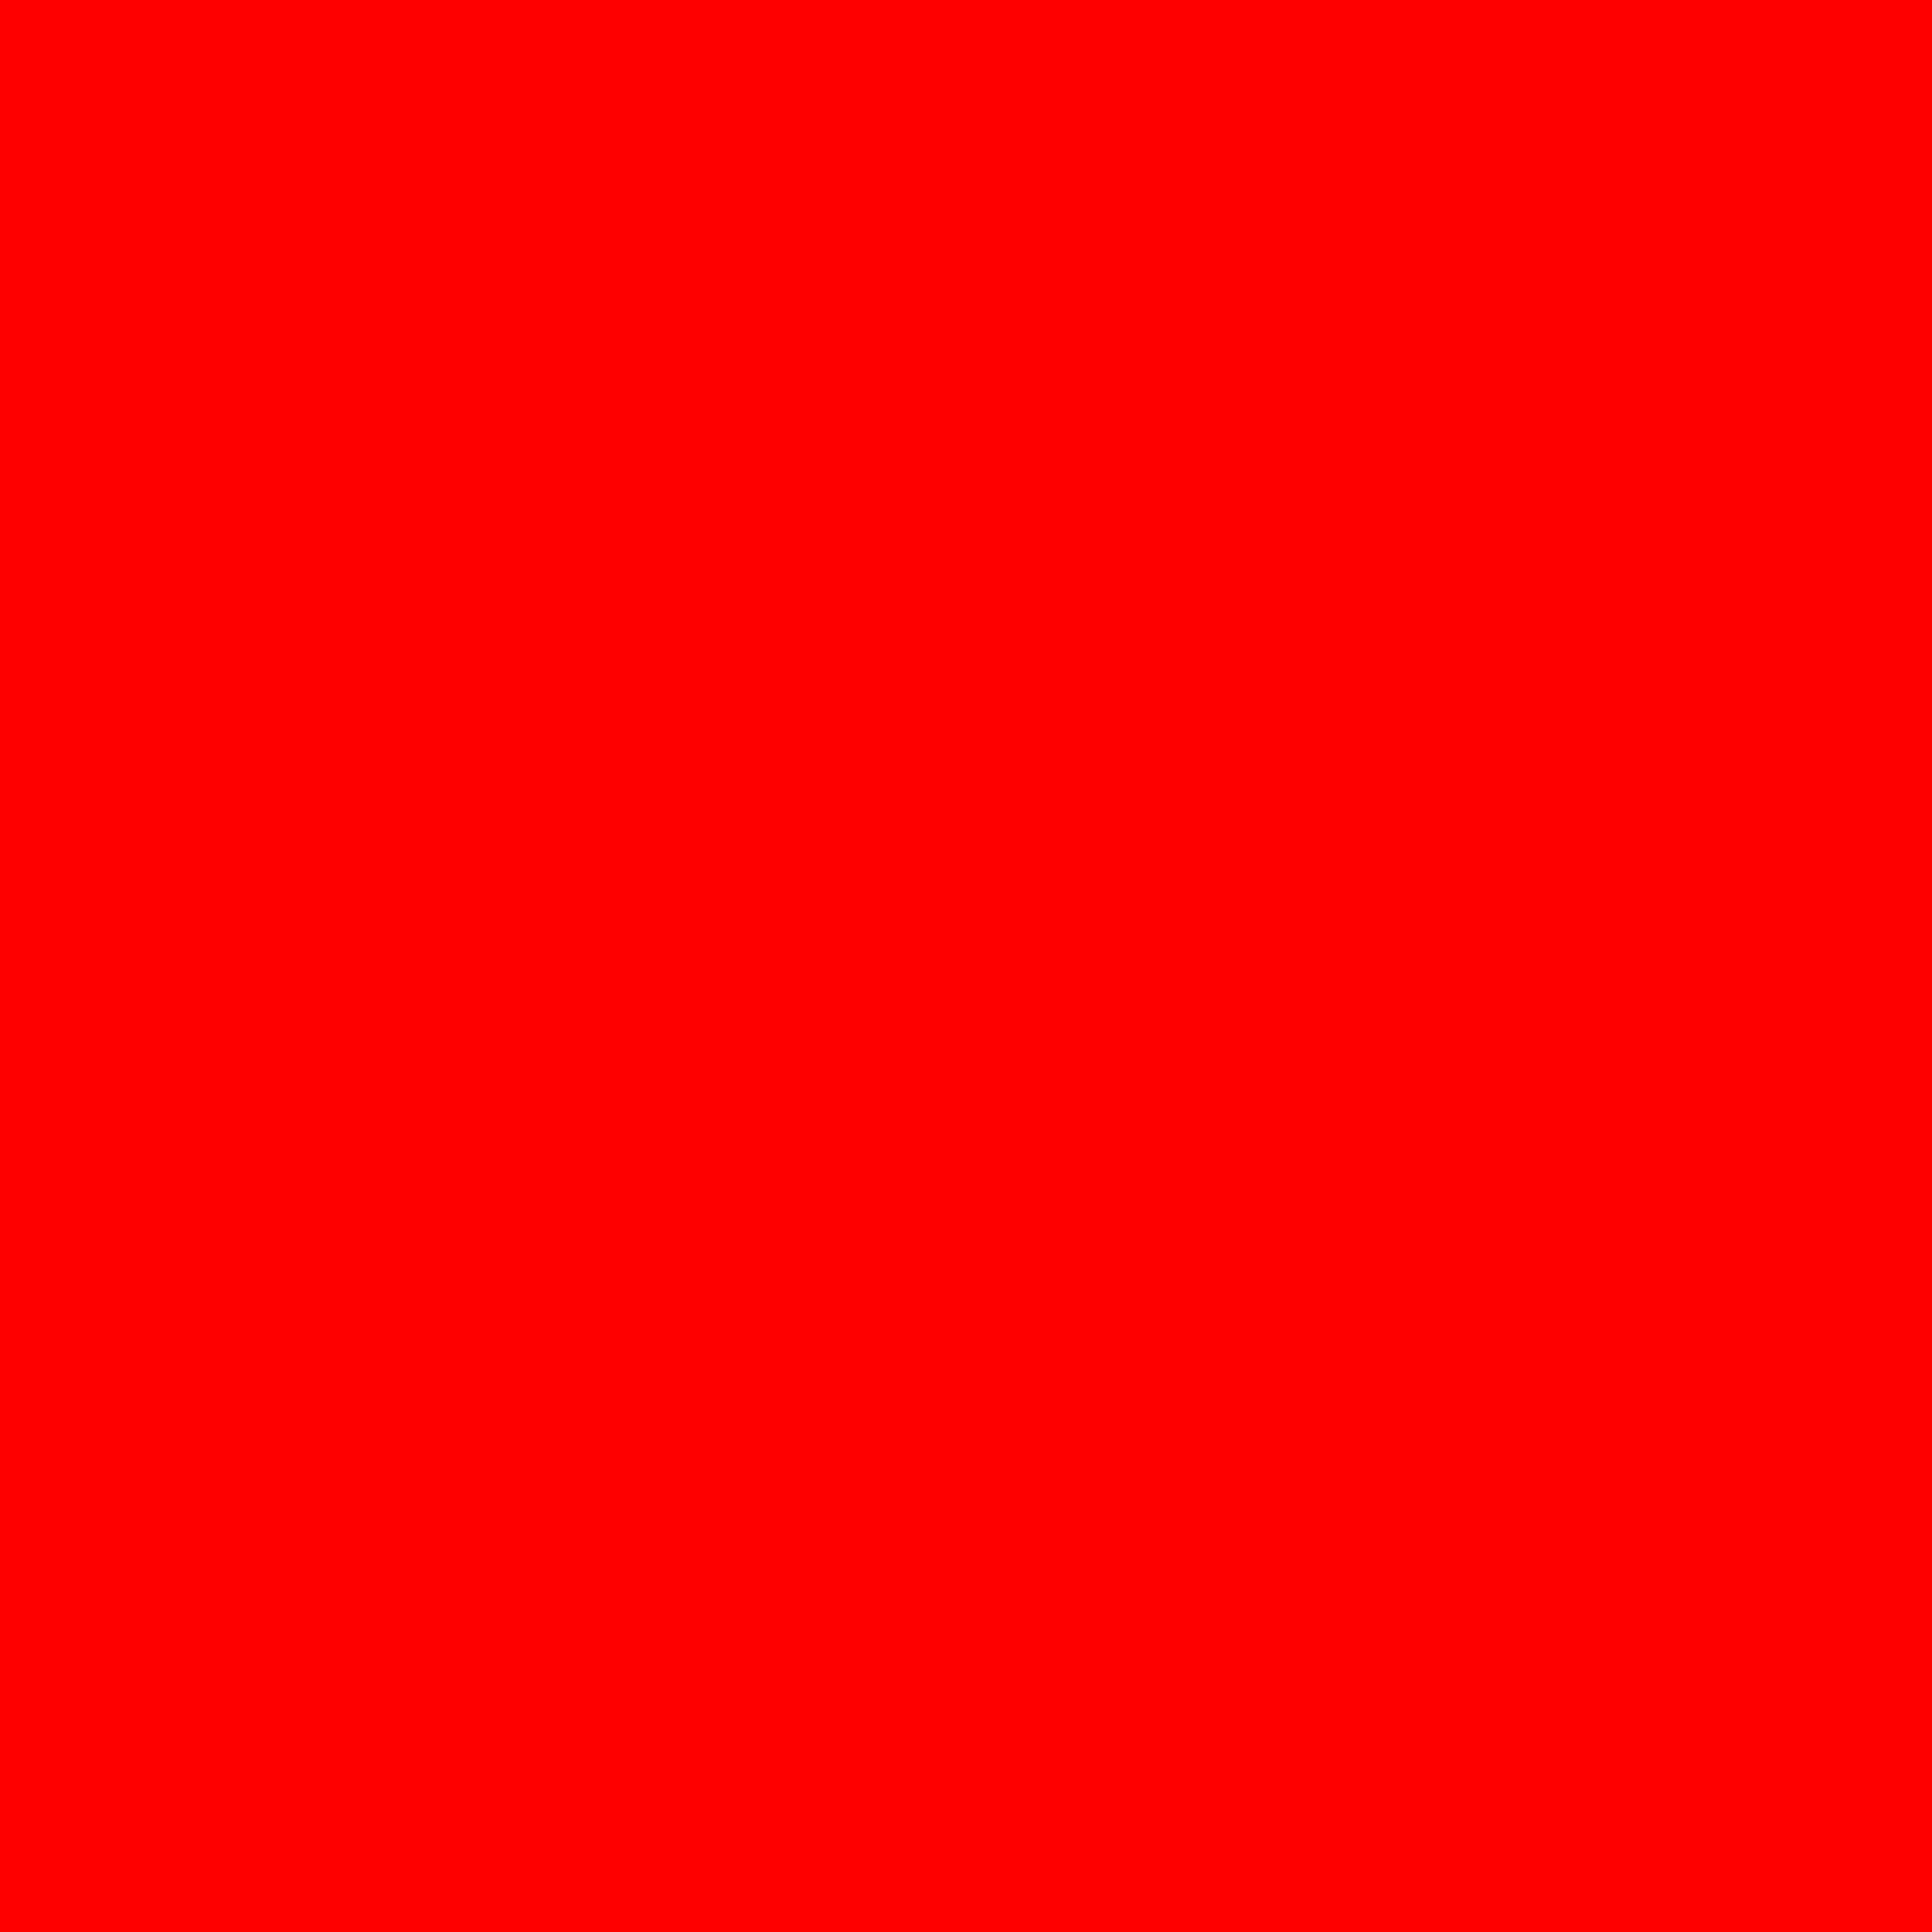 2732x2732 Red Solid Color Background